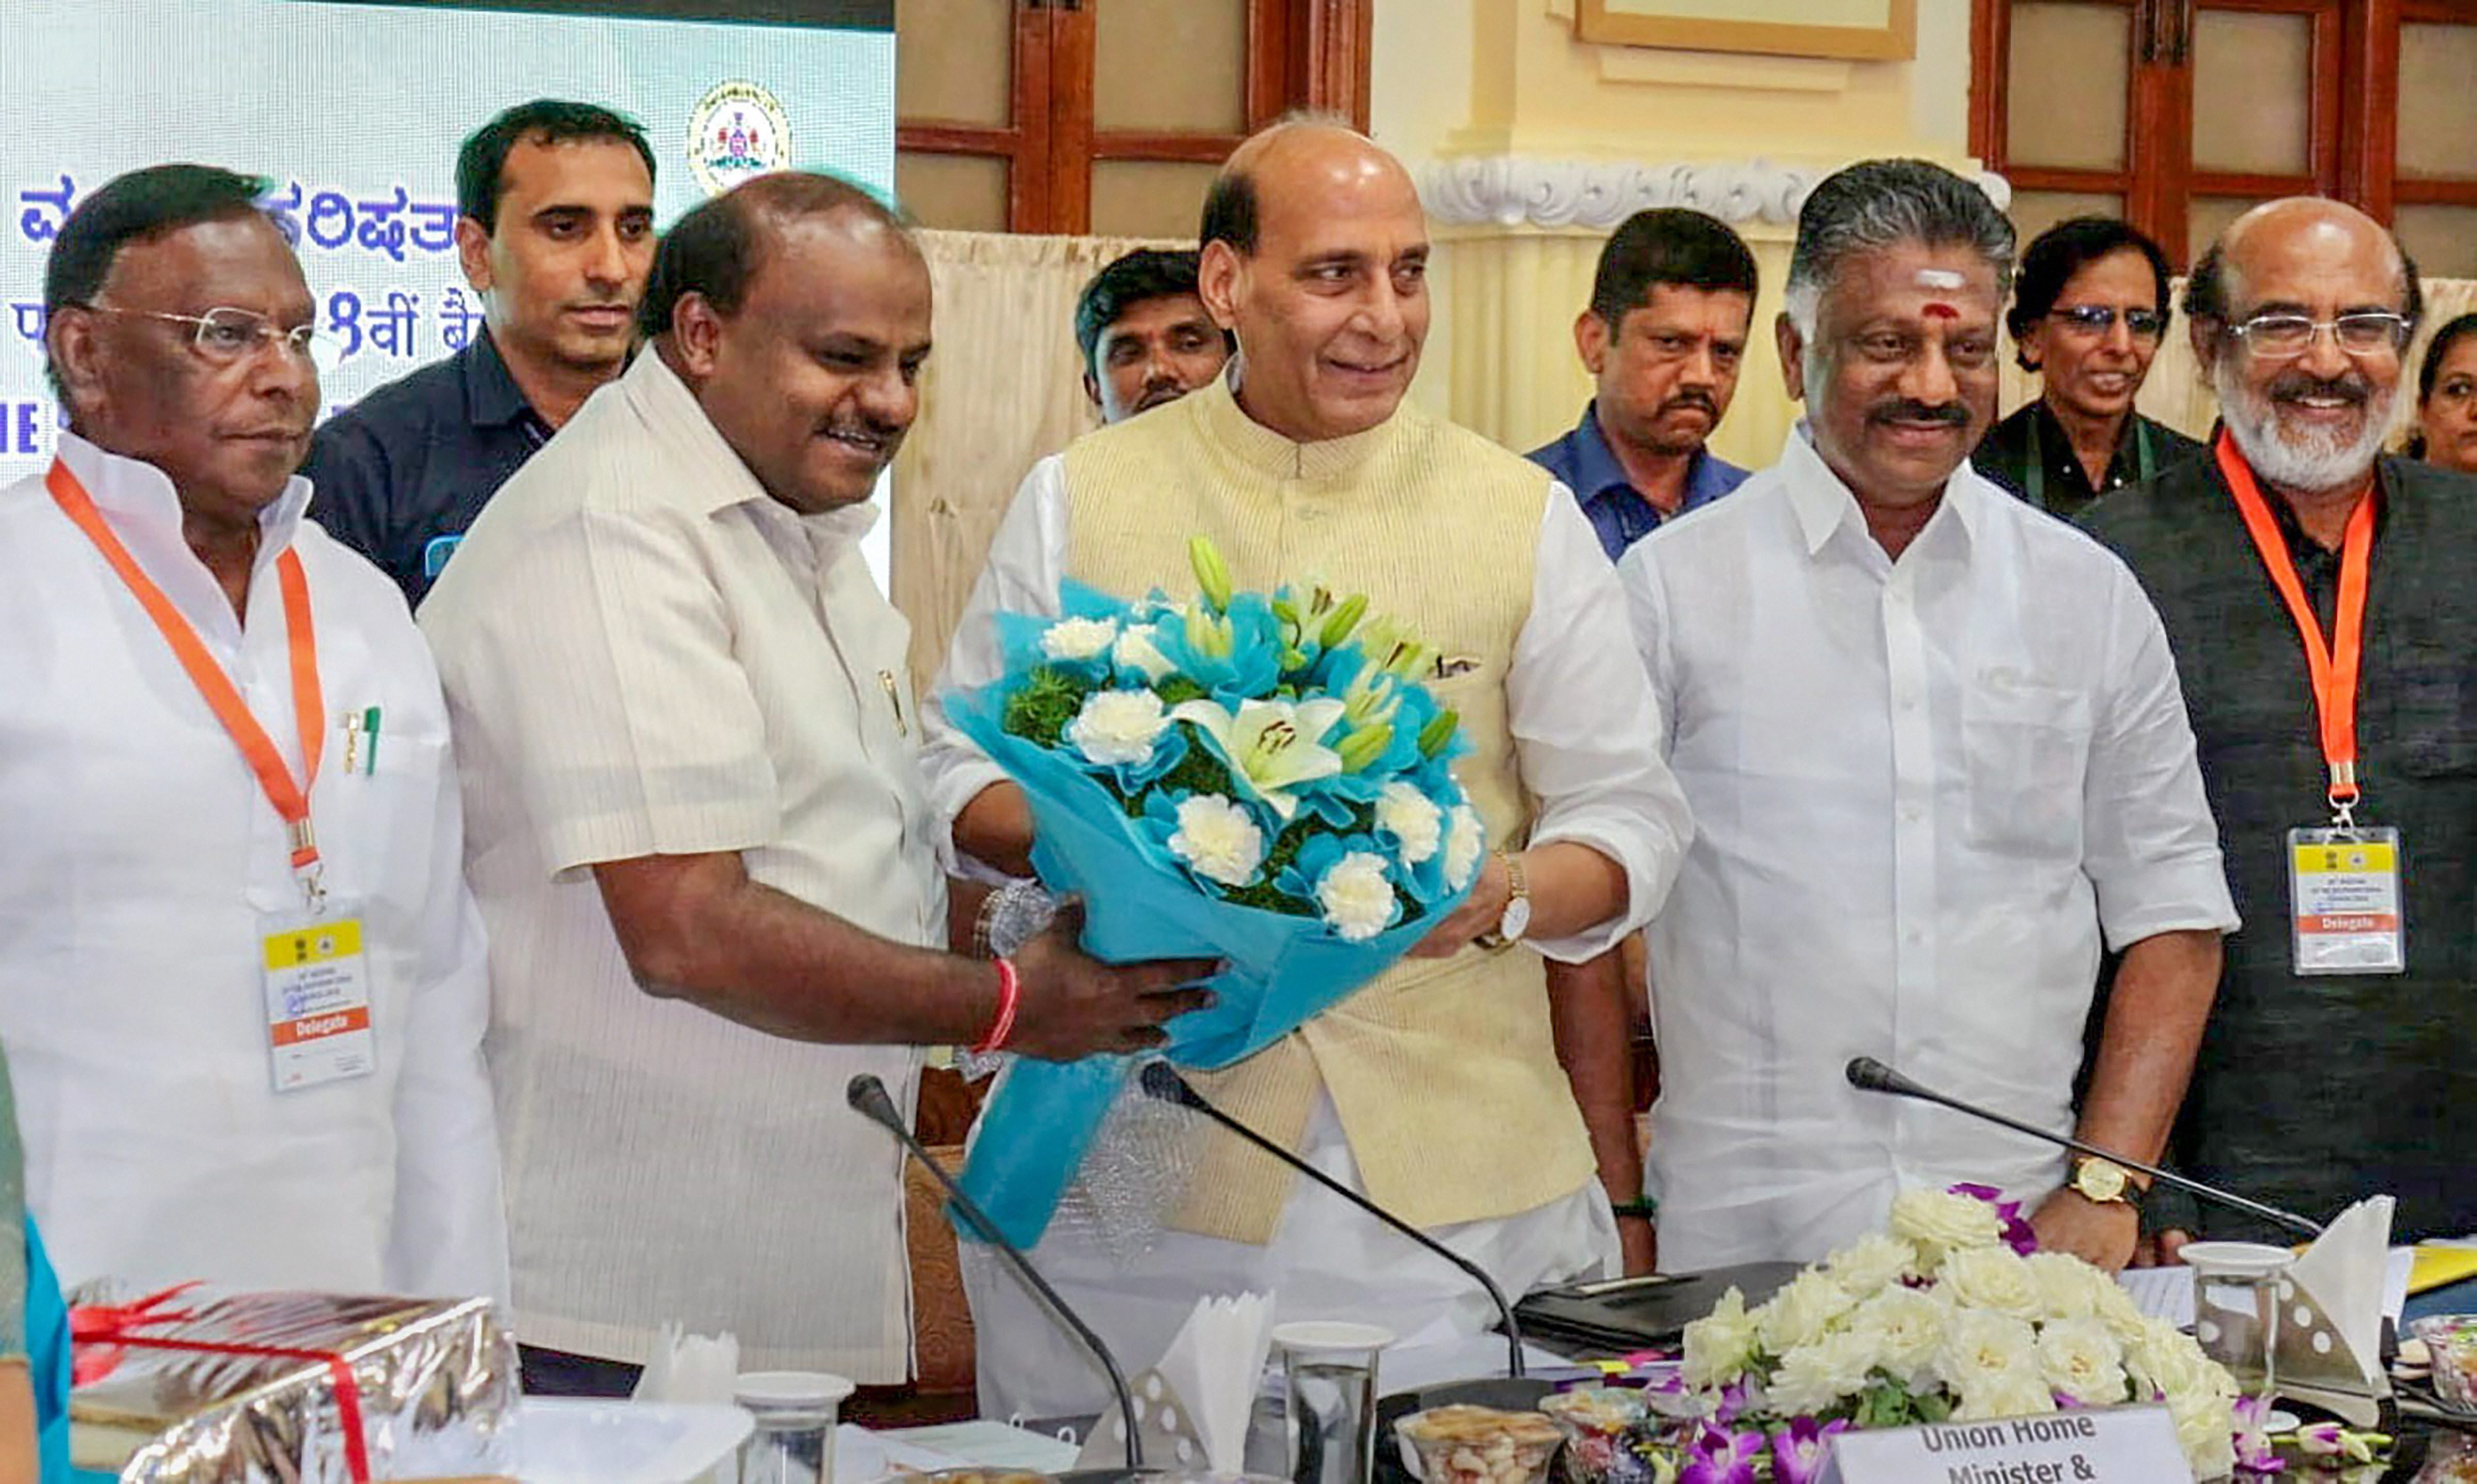 Union Home Minister Rajnath Singh being welcomed by Karnataka Chief Minister H.D. Kumaraswamy at the 28th Meeting of the Southern Zonal Council, in Bengaluru - PTI